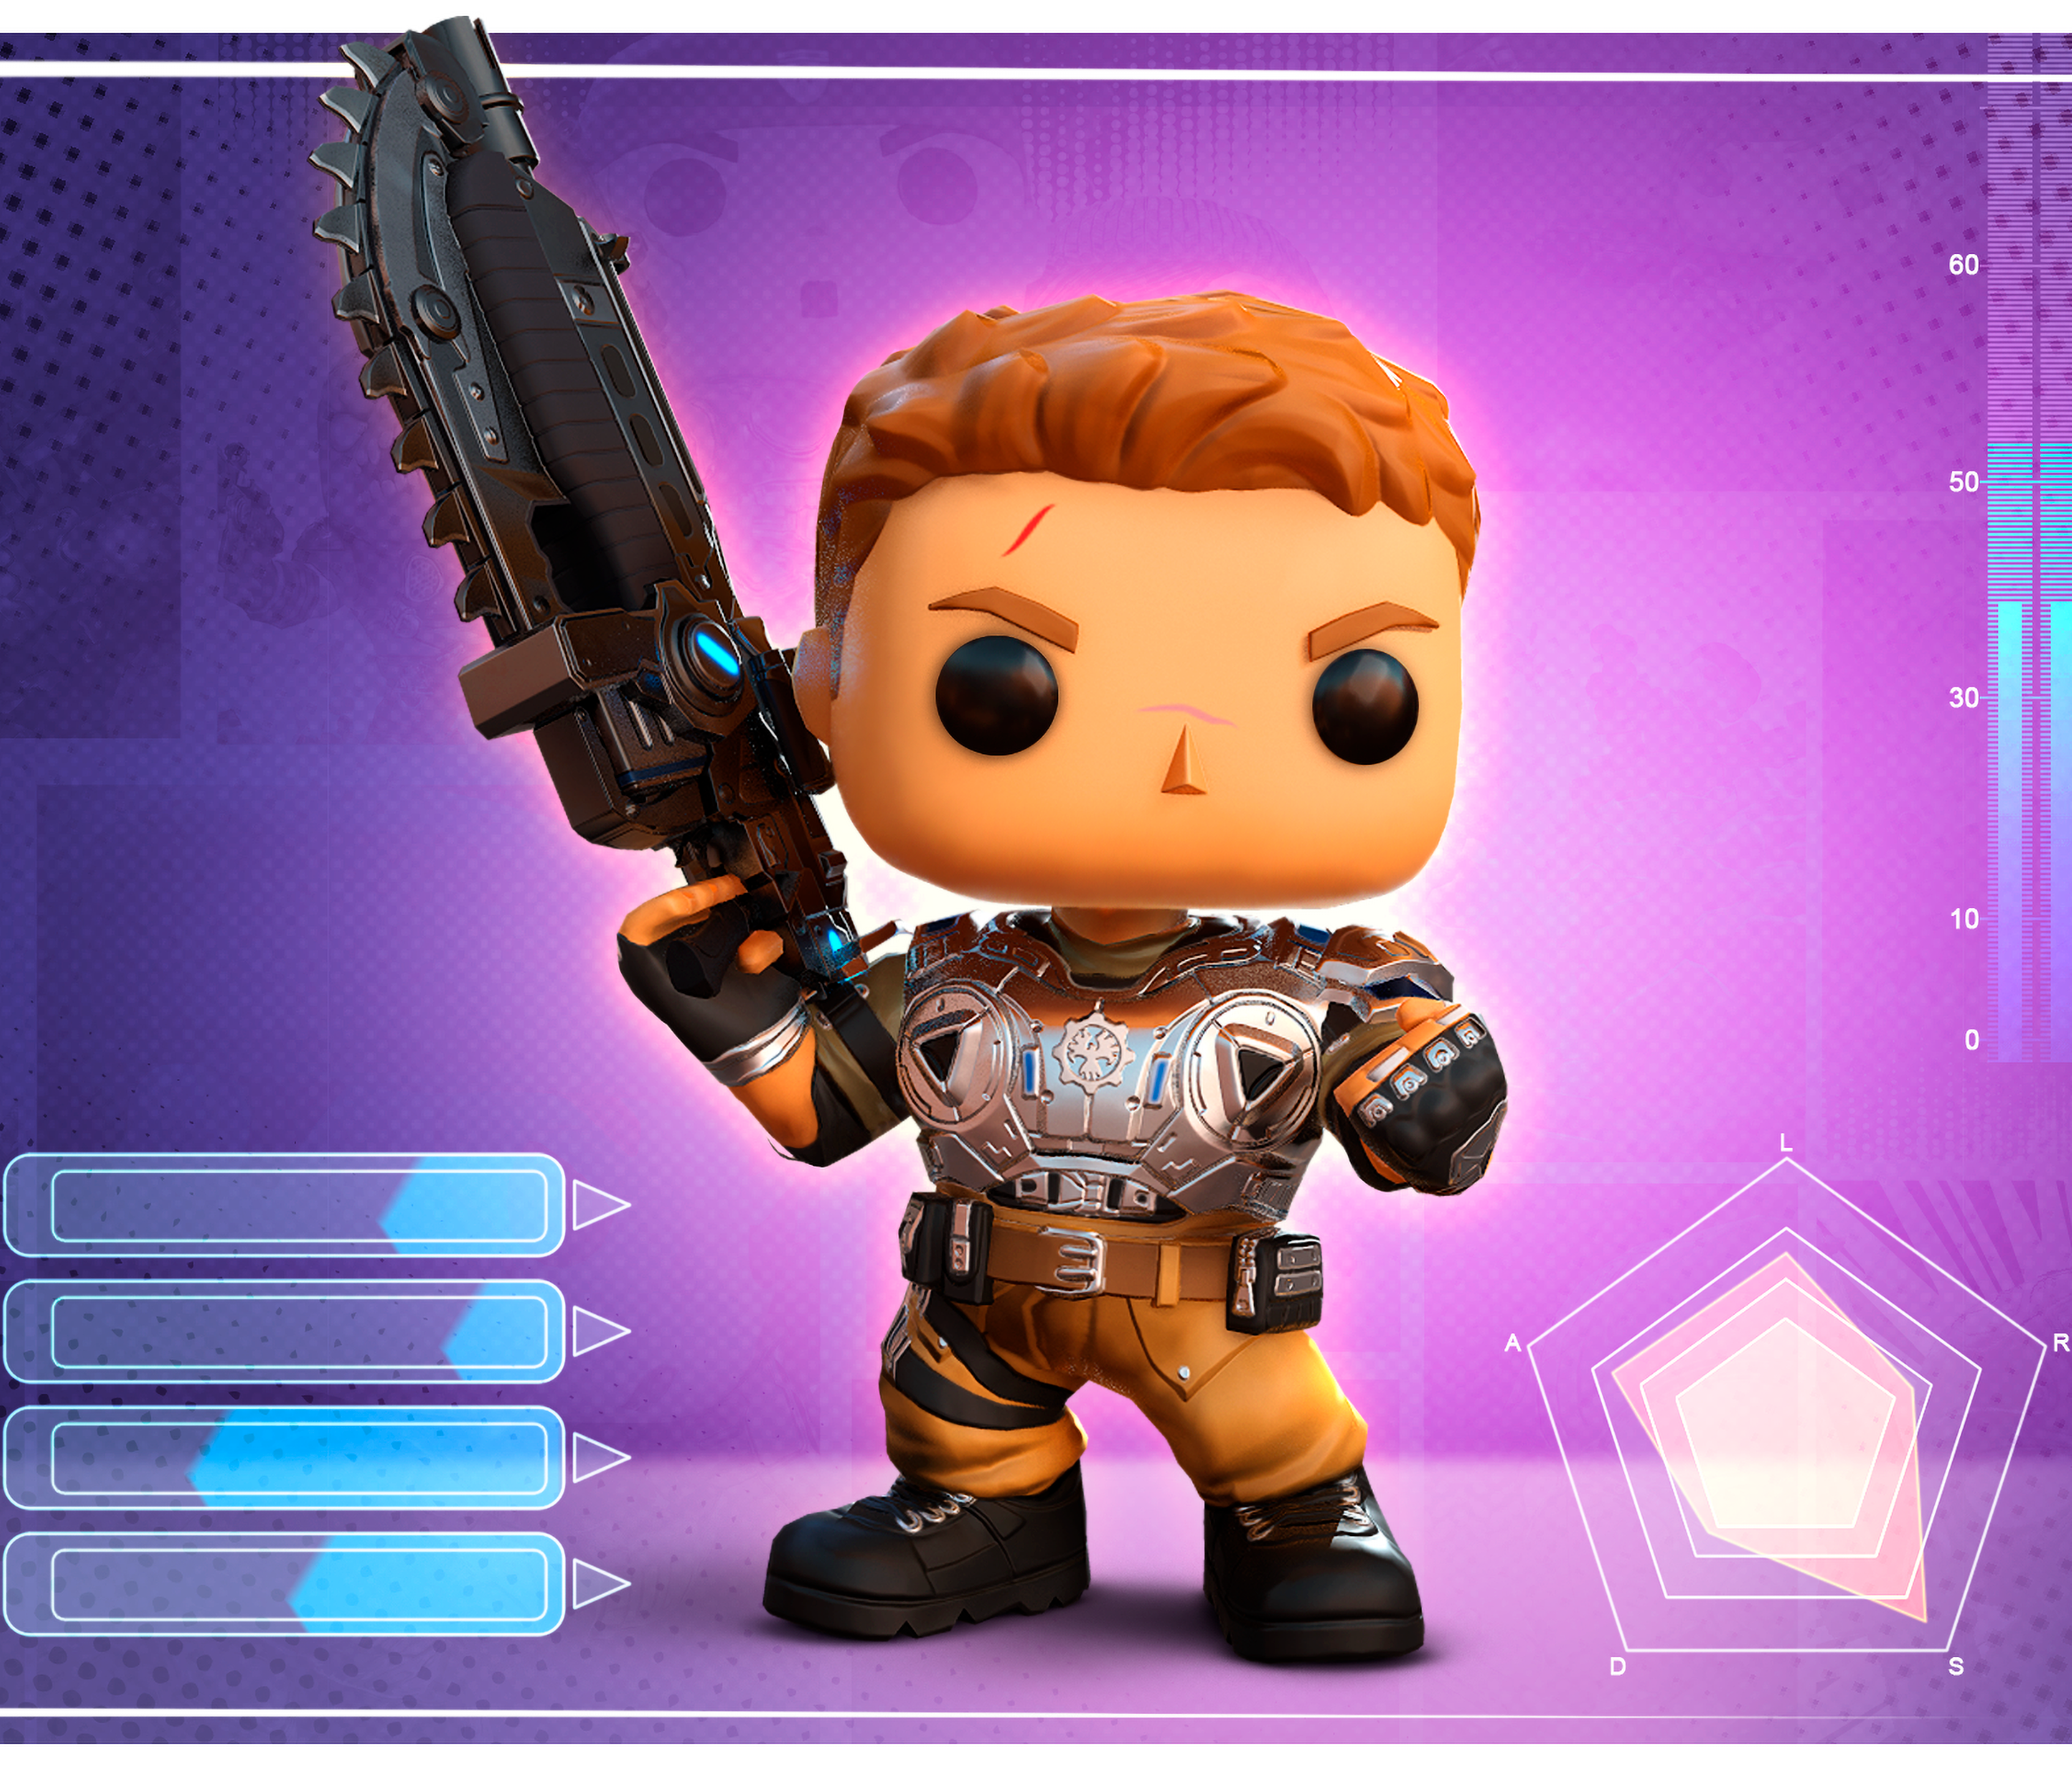 JD from Gears POP! standing against a computerize background with graphs